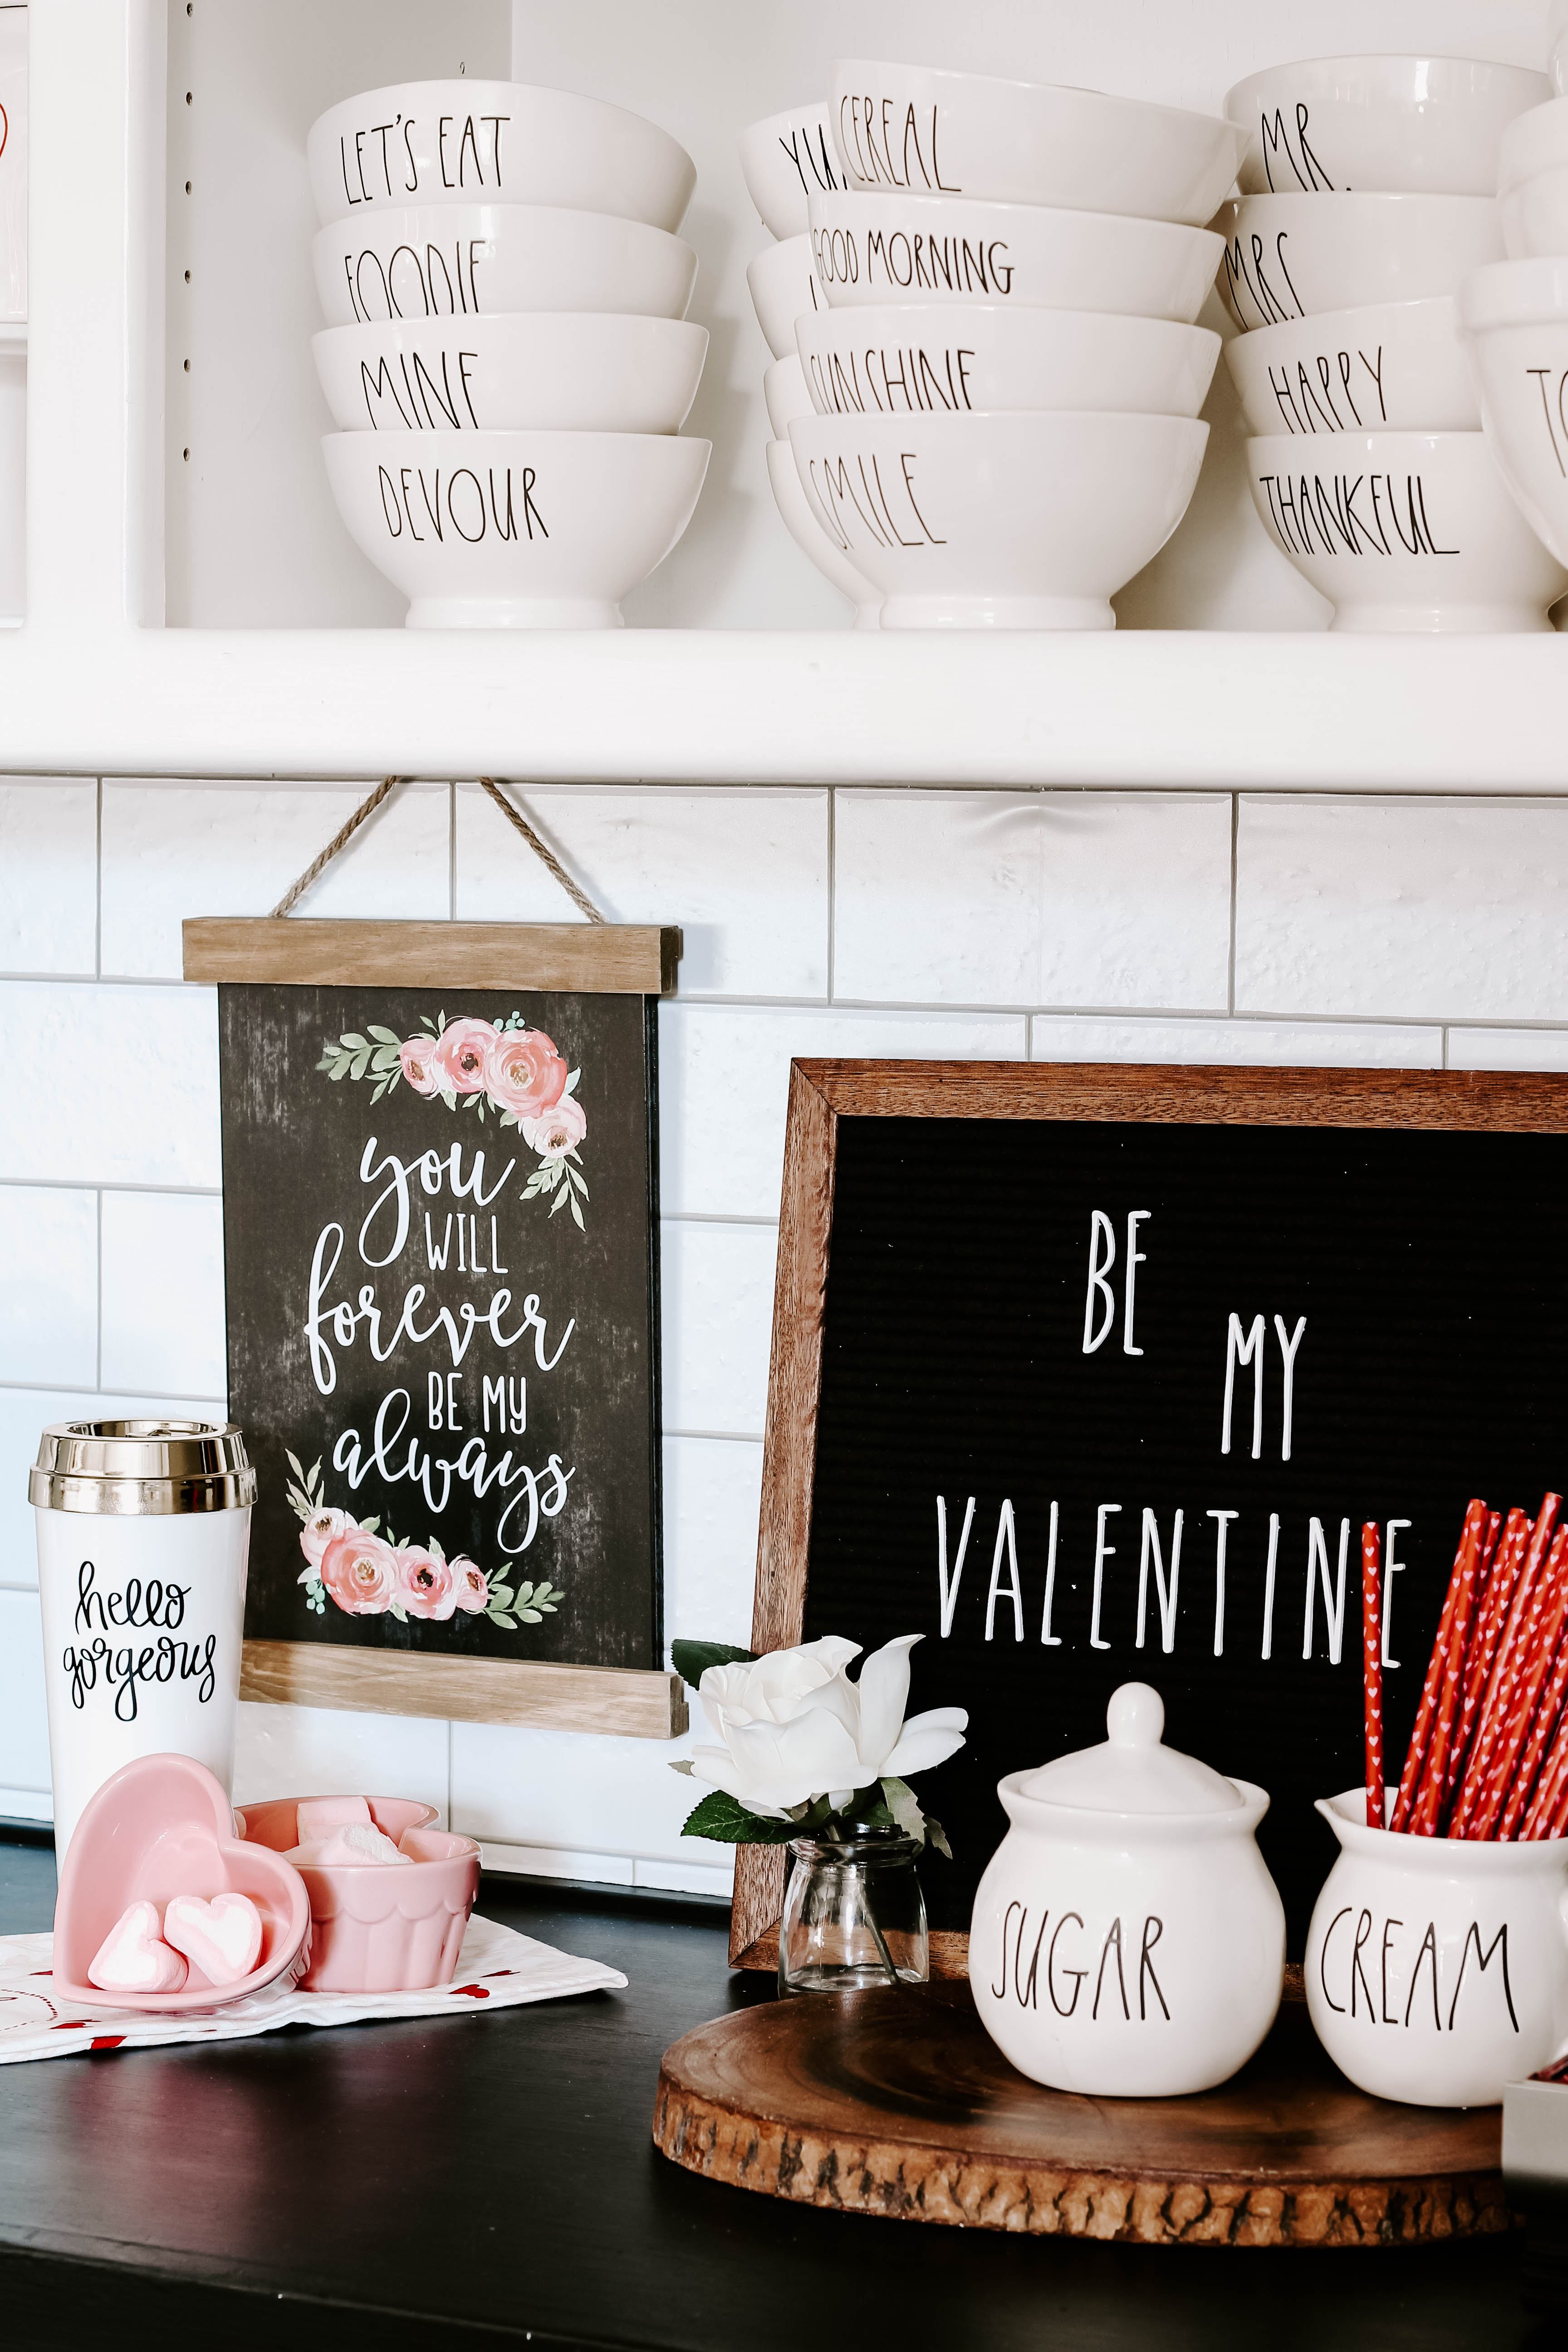 See how I created a farmhouse style Valentine coffee bar with lots of Rae Dunn and small touches of pink and red Valentine decor. #valentinecoffeebar